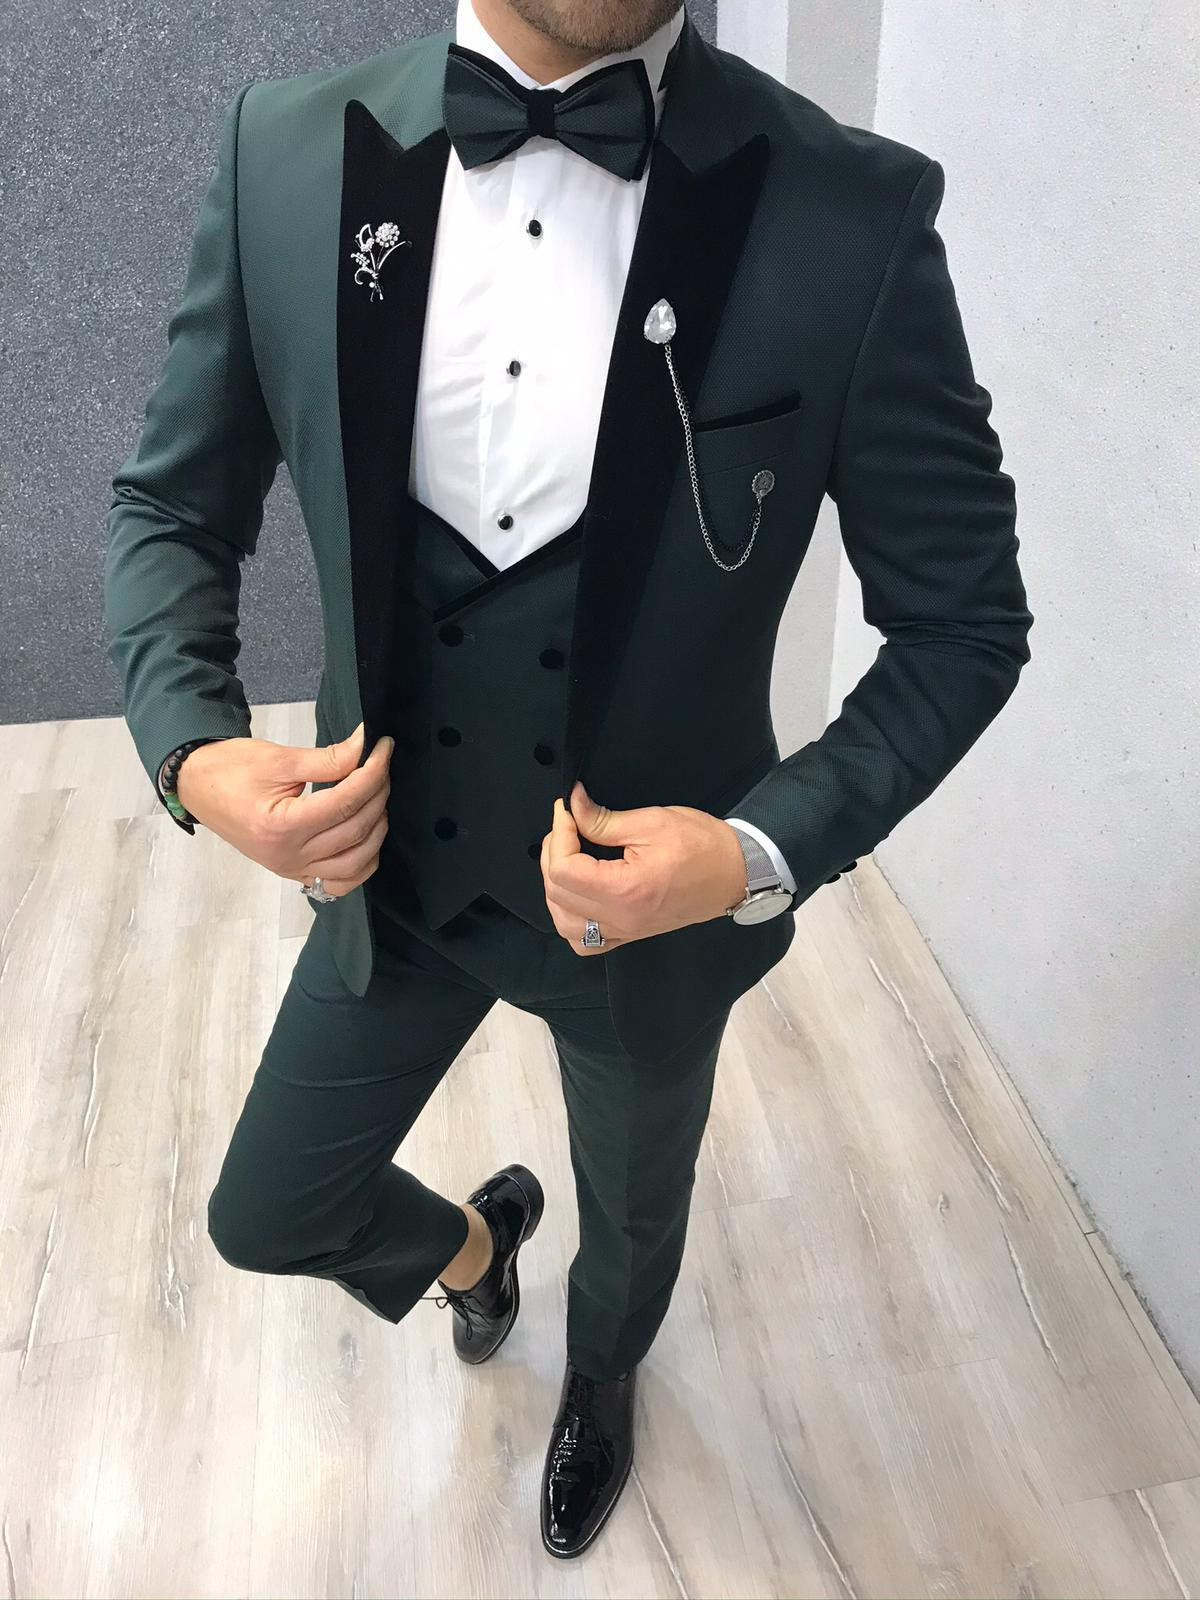 Tuxedo vs. Suit Which Should You Wear on Your Wedding Day by GentWith Blog